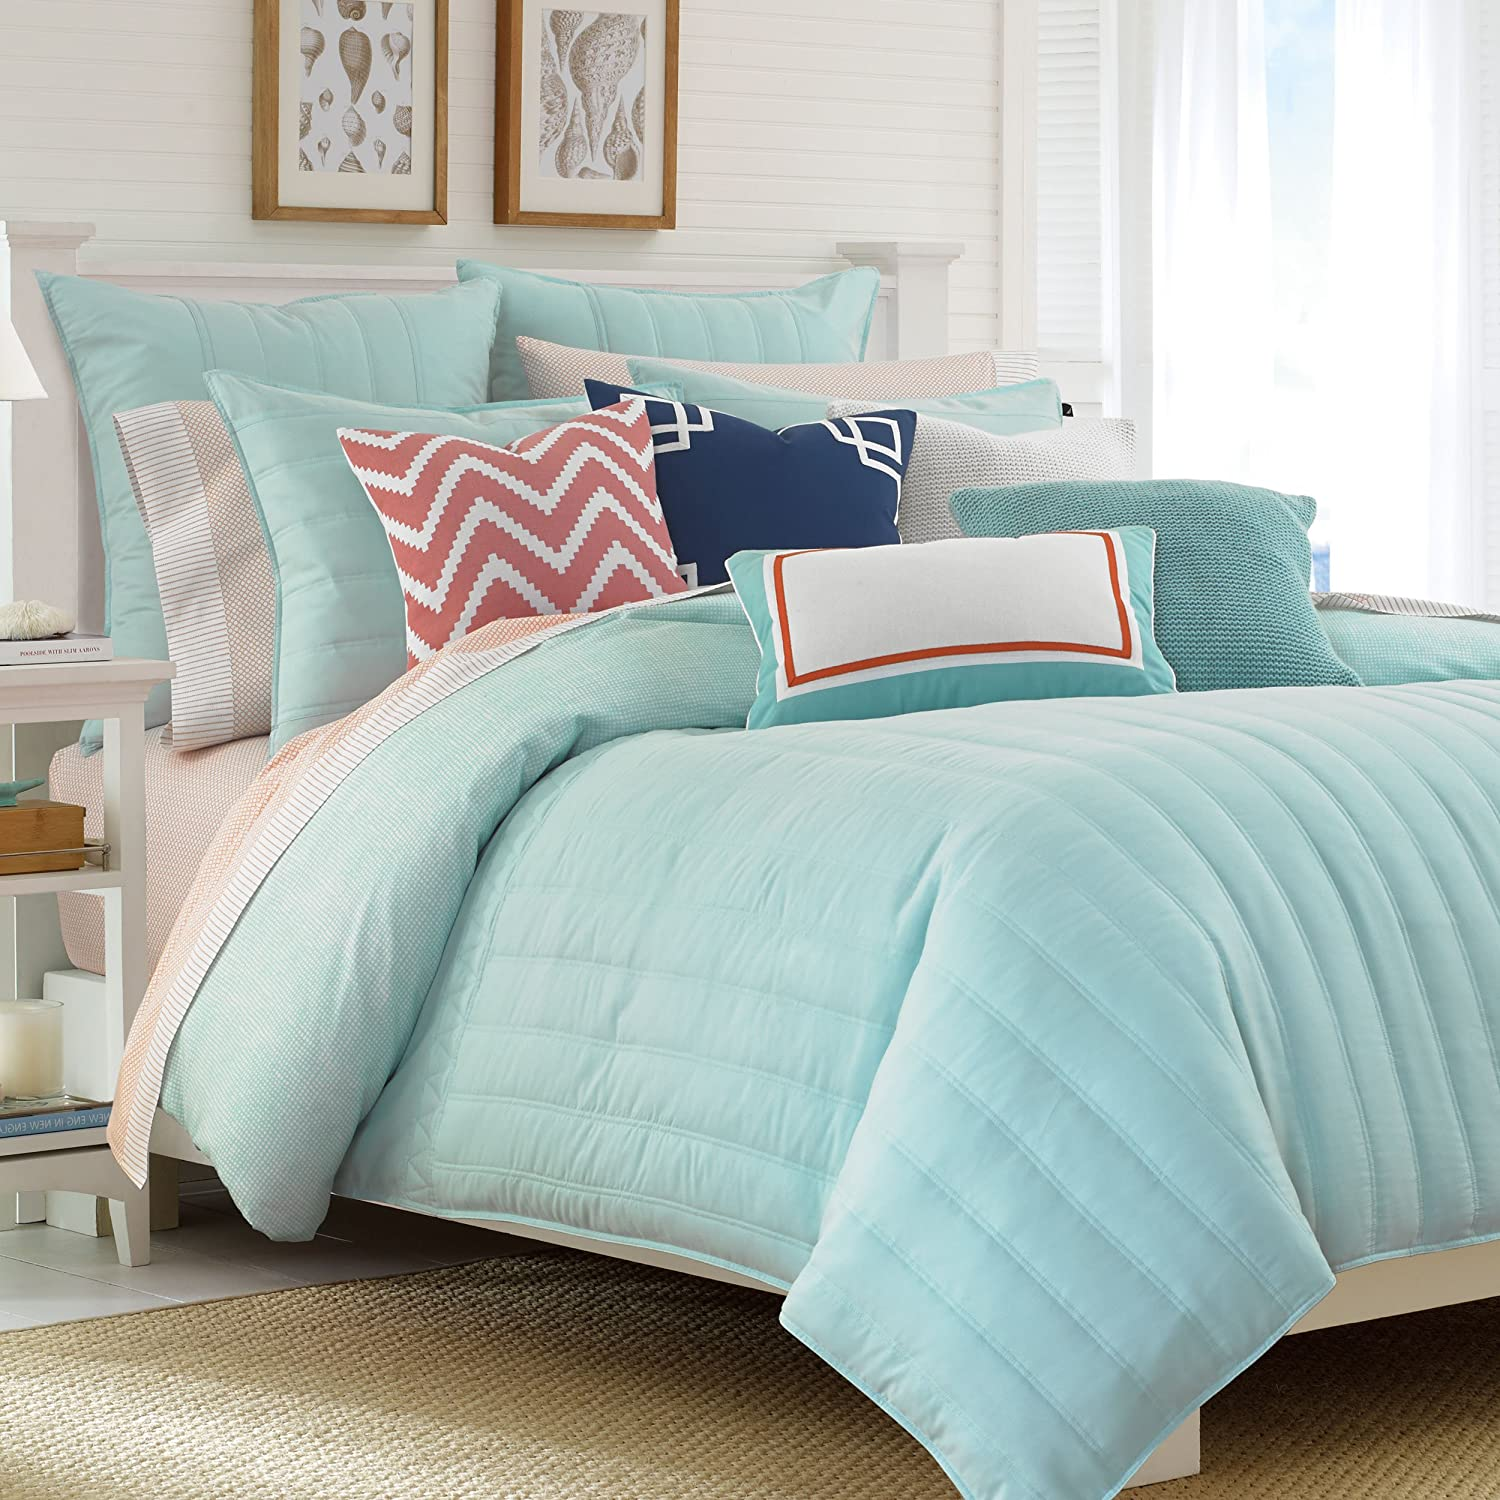 bath free overstock home bedding bed comforter sherpa com piece set vcny product shipping mink on micro